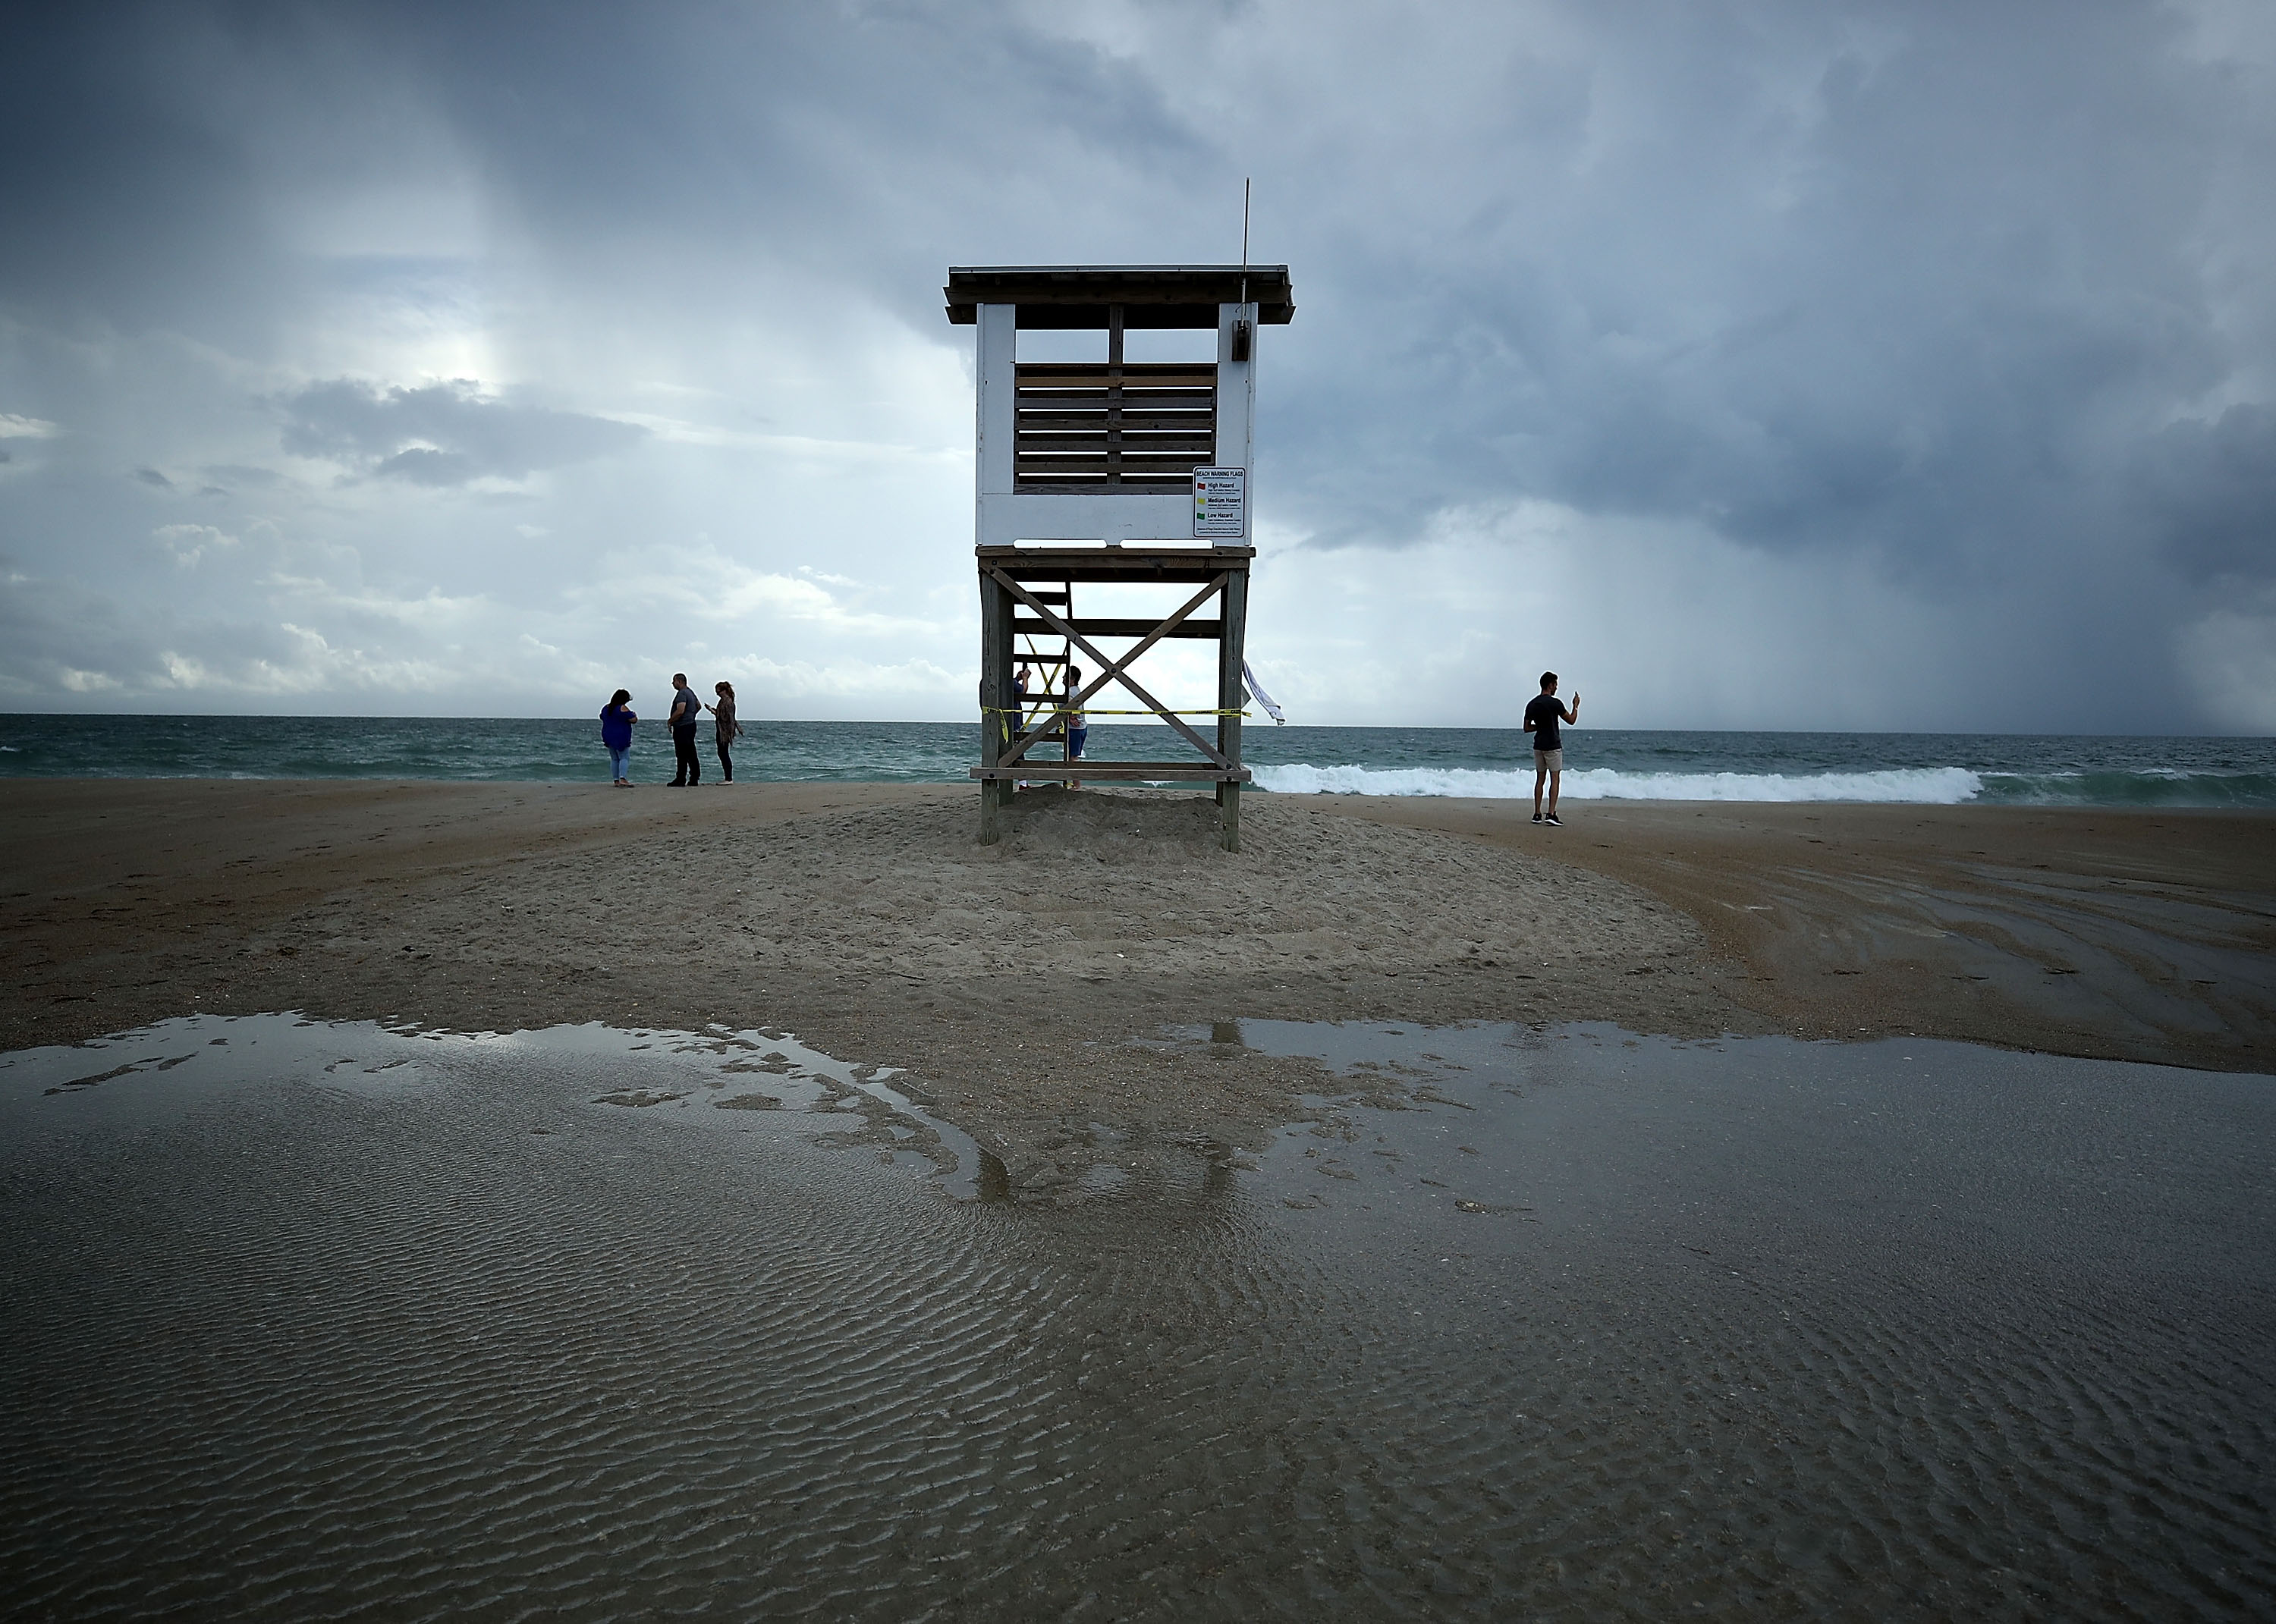 People stand near a lifeguard stand as Hurricane Florence approaches, on September 11, 2018 in Wrightsville Beach, United States. Hurricane Florence is expected on Friday possibly as a category 4 storm along the Virginia, North Carolina and South Carolina coastline.